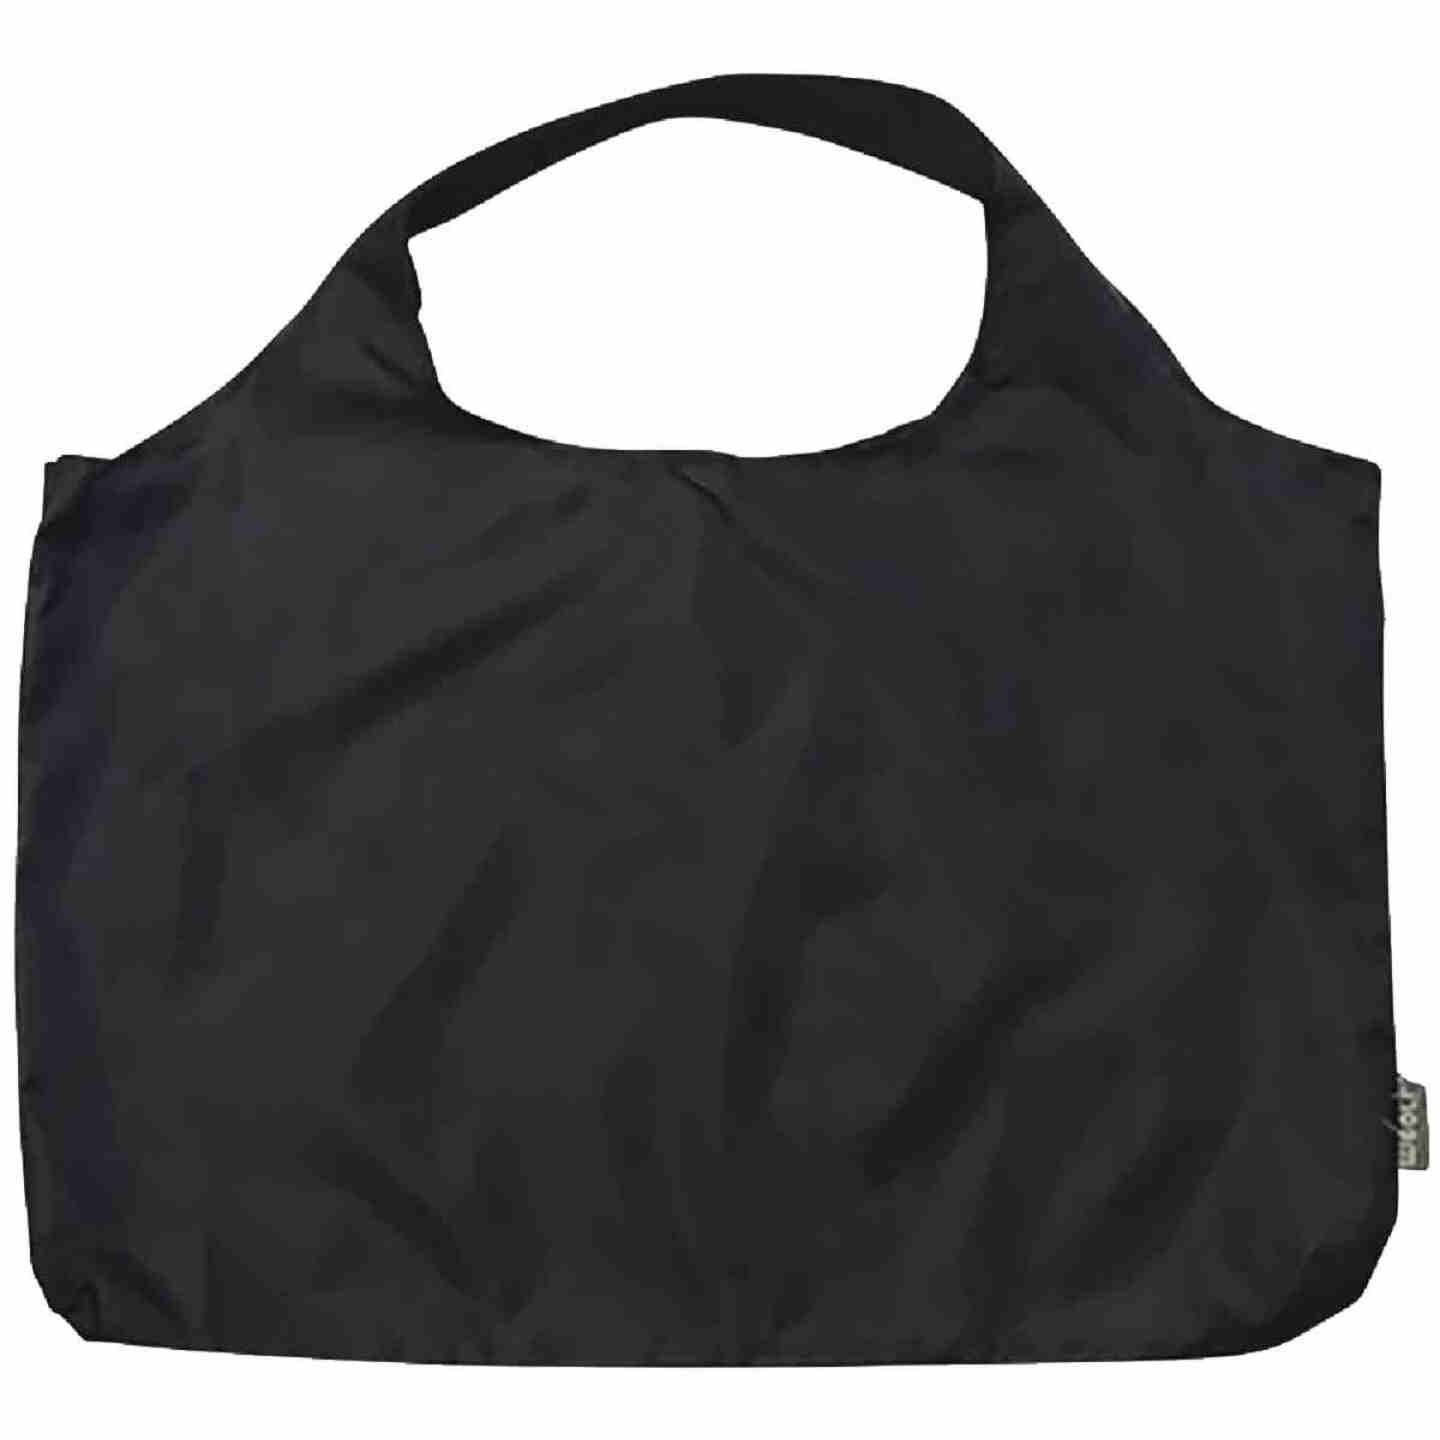 Meori Black Pocket Shopper Bag Image 1